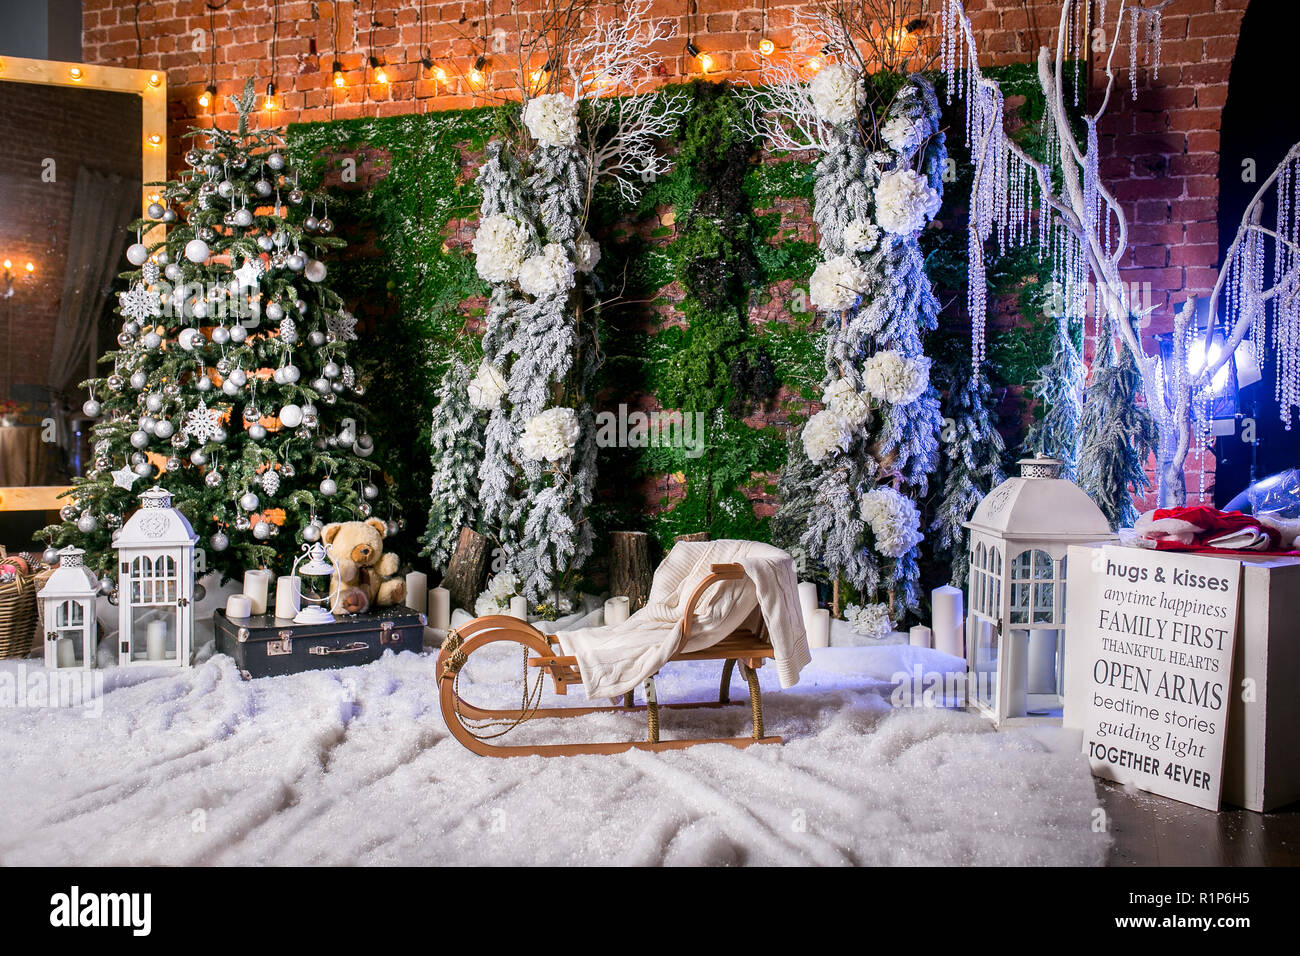 Icicles For Christmas Trees.Wonderful Christmas Location With Imitation Of Snow Icicles